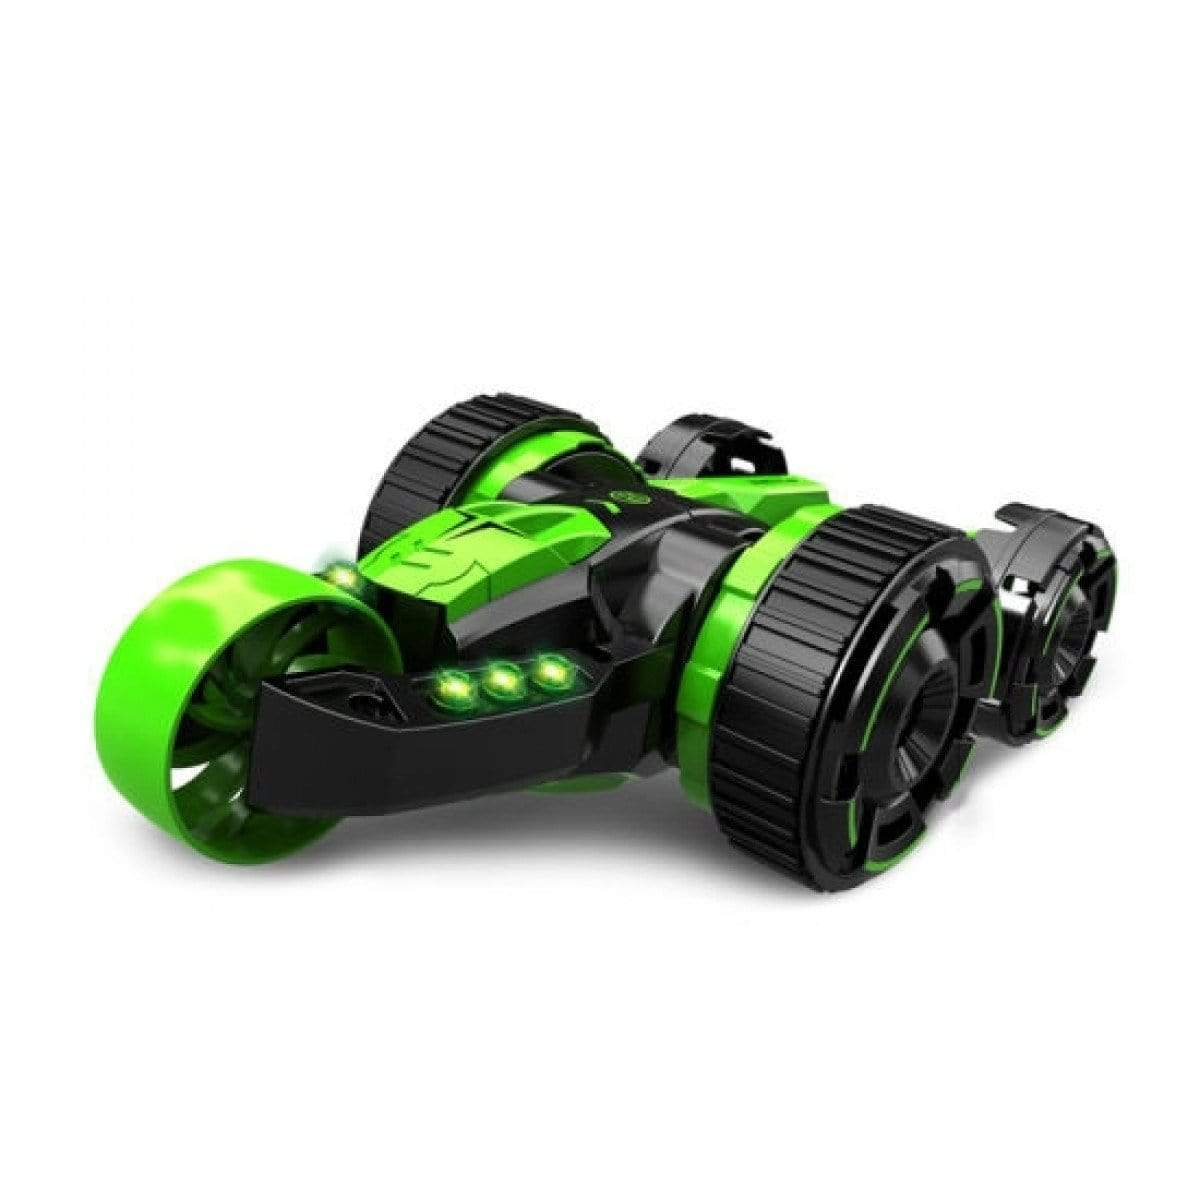 6CH Mini Stunt Car with 5 Wheels Snatcher Online Shopping South Africa